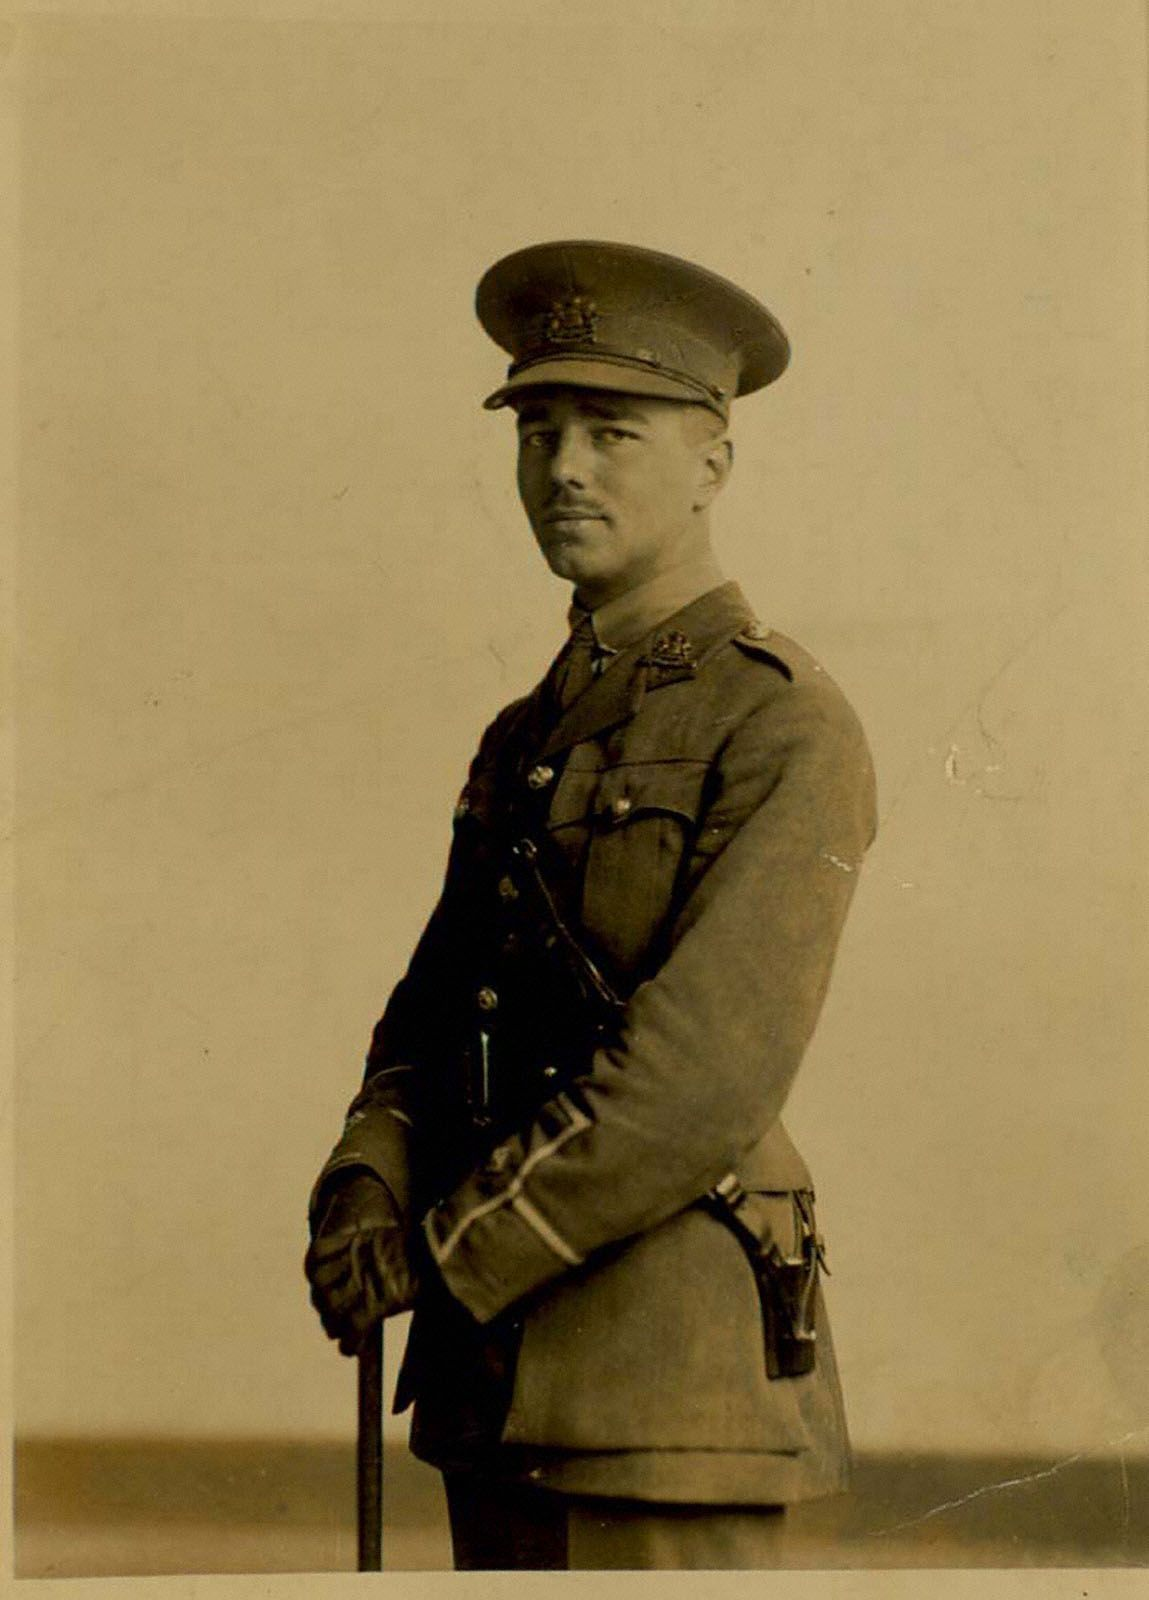 a biography of wilfred owen a british war poet Wilfred owen - poet - born on march 18, 1893, wilfred edward salter owen is viewed as one of the most admired poets of world war i.